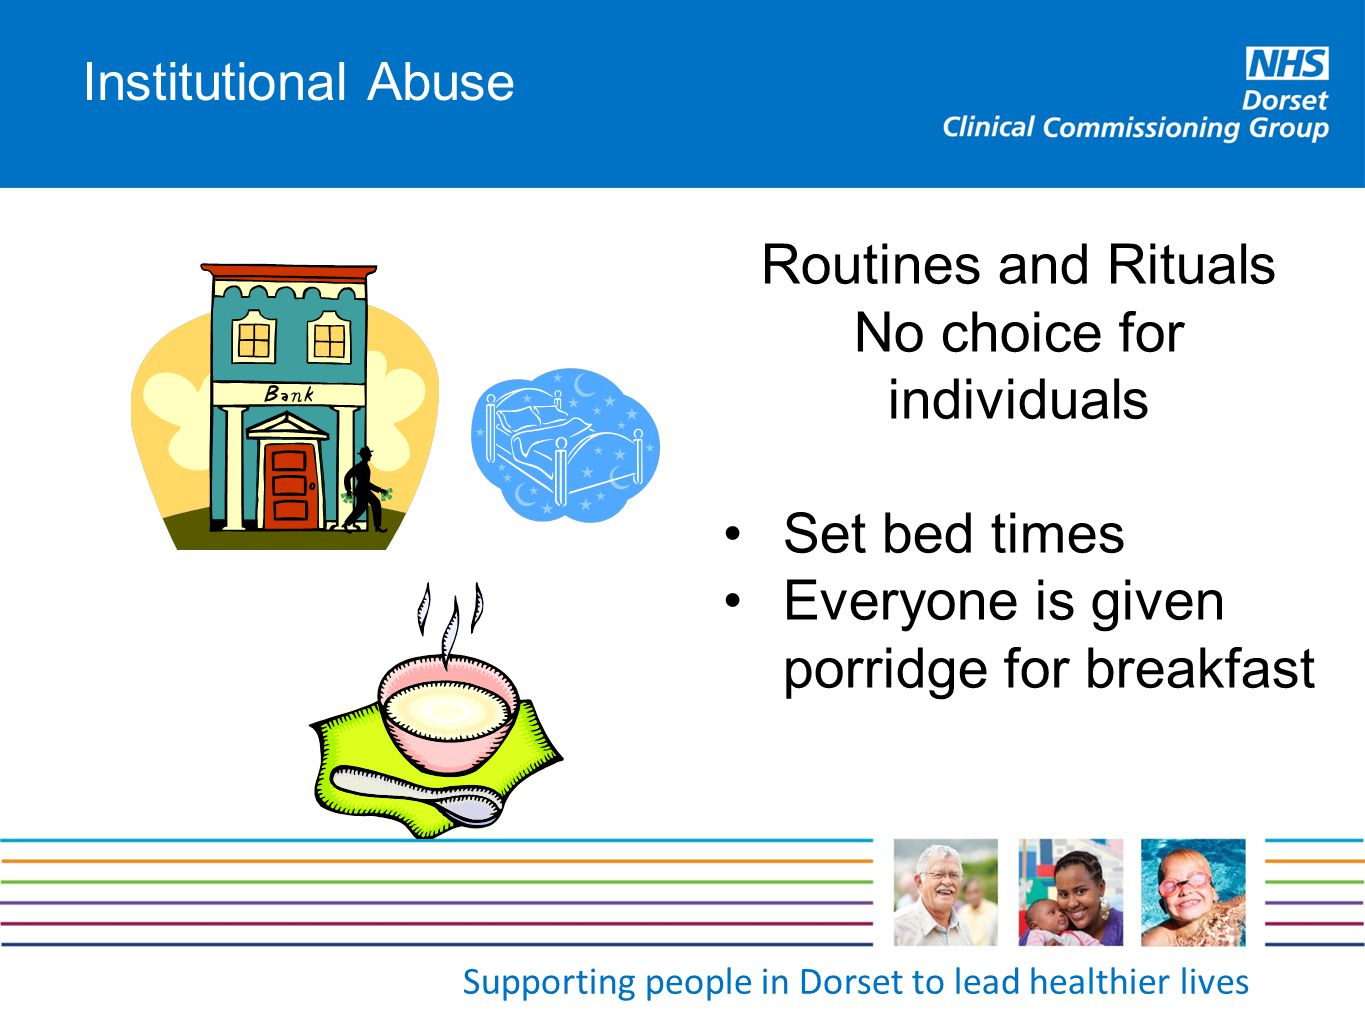 Supporting people in Dorset to lead healthier lives Institutional Abuse Routines and Rituals No choice for individuals Set bed times Everyone is given